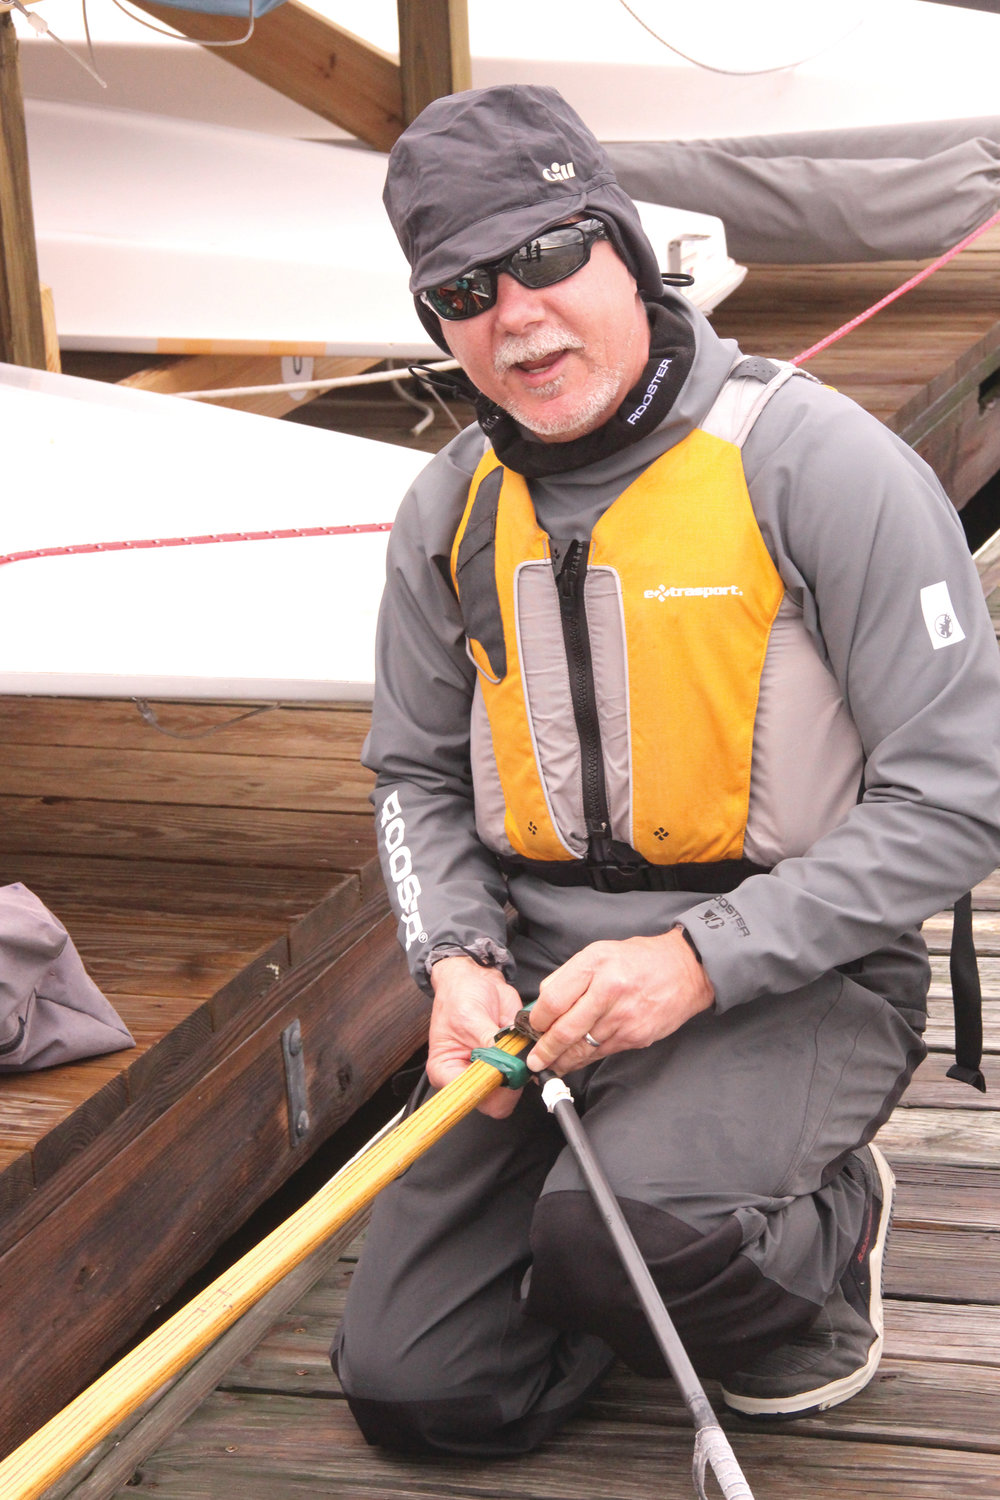 DON'T WANT TO SCRATCH THE DECK: Chris lee tapes the hardware on his tiller so it won't scratch the boat. He regrets he didn't get around to doing it sooner.